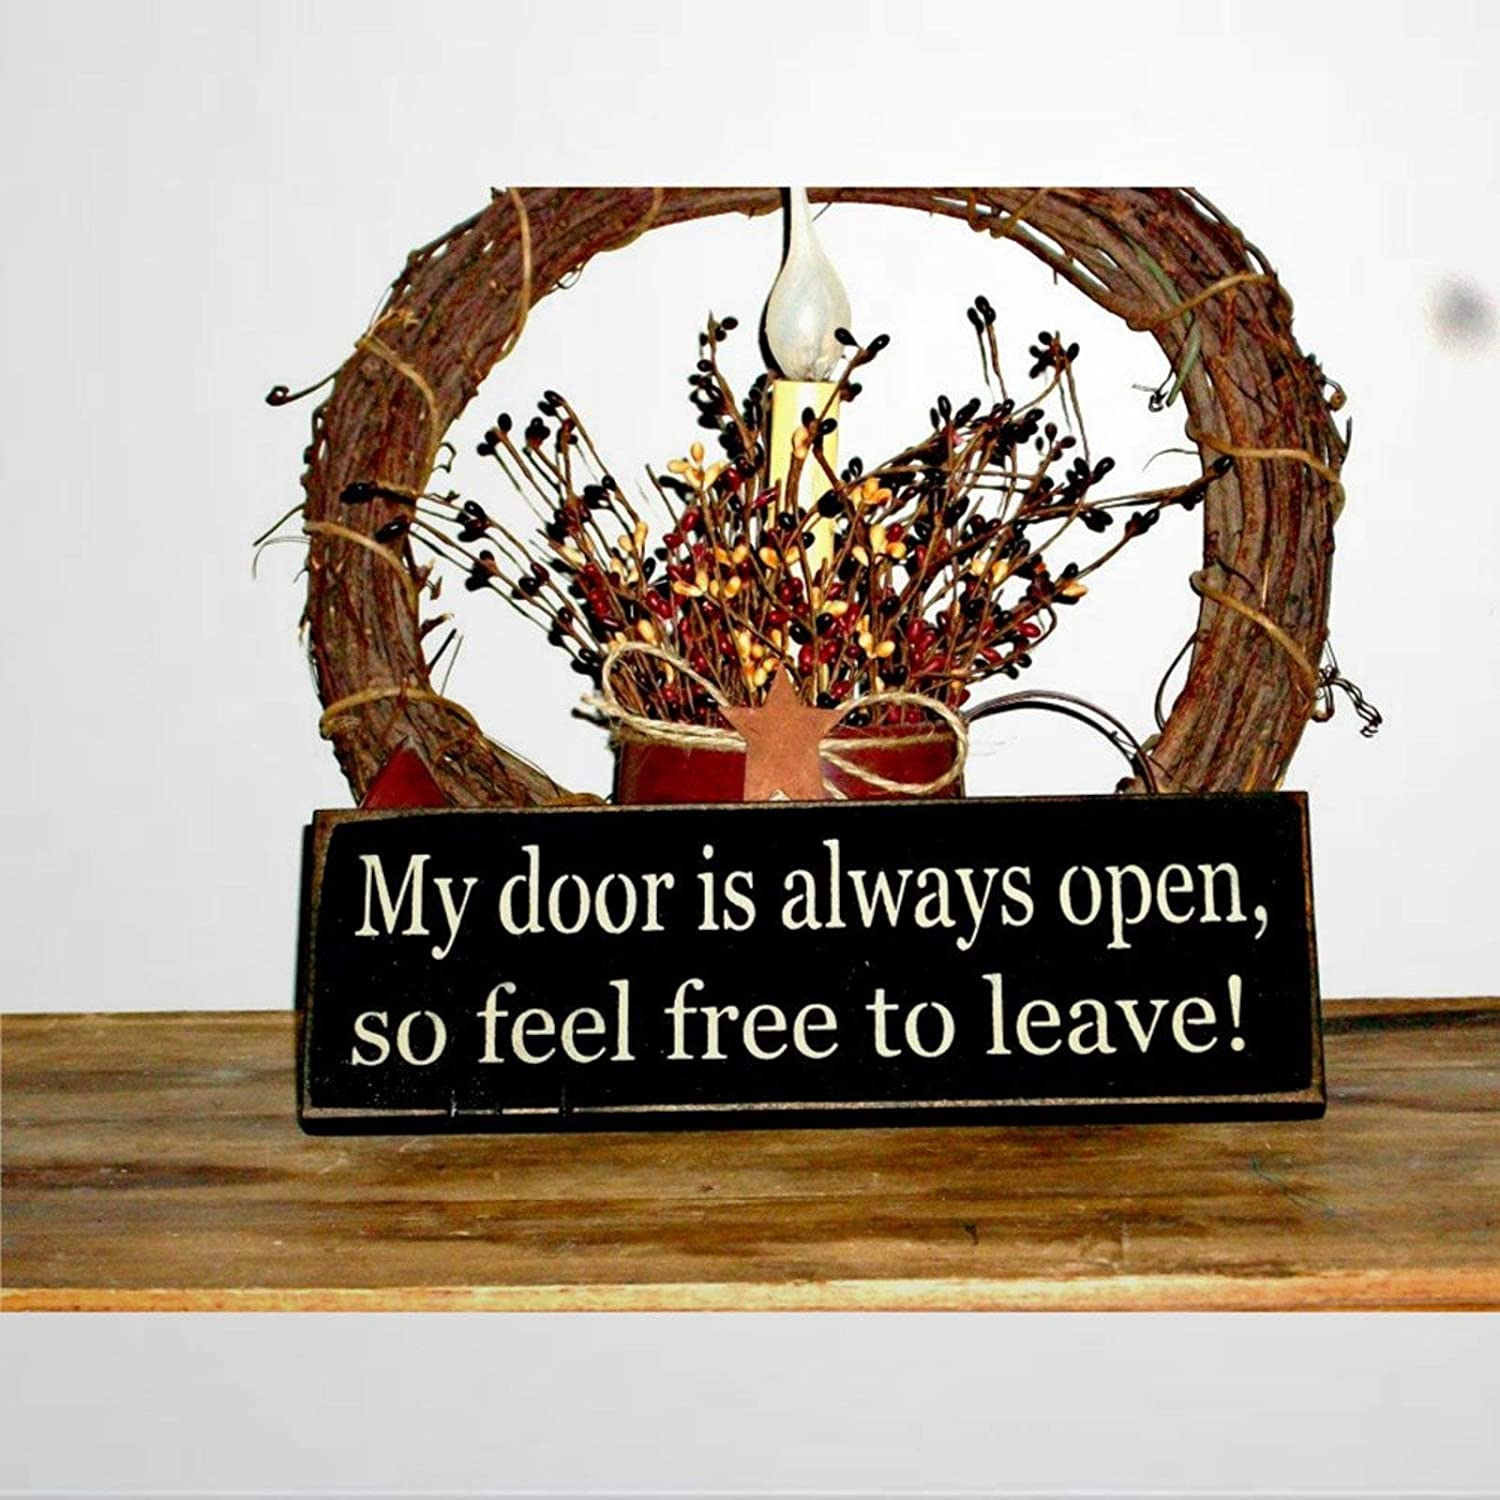 BYRON HOYLE My Door is Always Open Wood Sign,Wooden Wall Hanging Art,Inspirational Farmhouse Wall Plaque,Rustic Home Decor for Living Room,Nursery,Bedroom,Porch,Gallery Wall